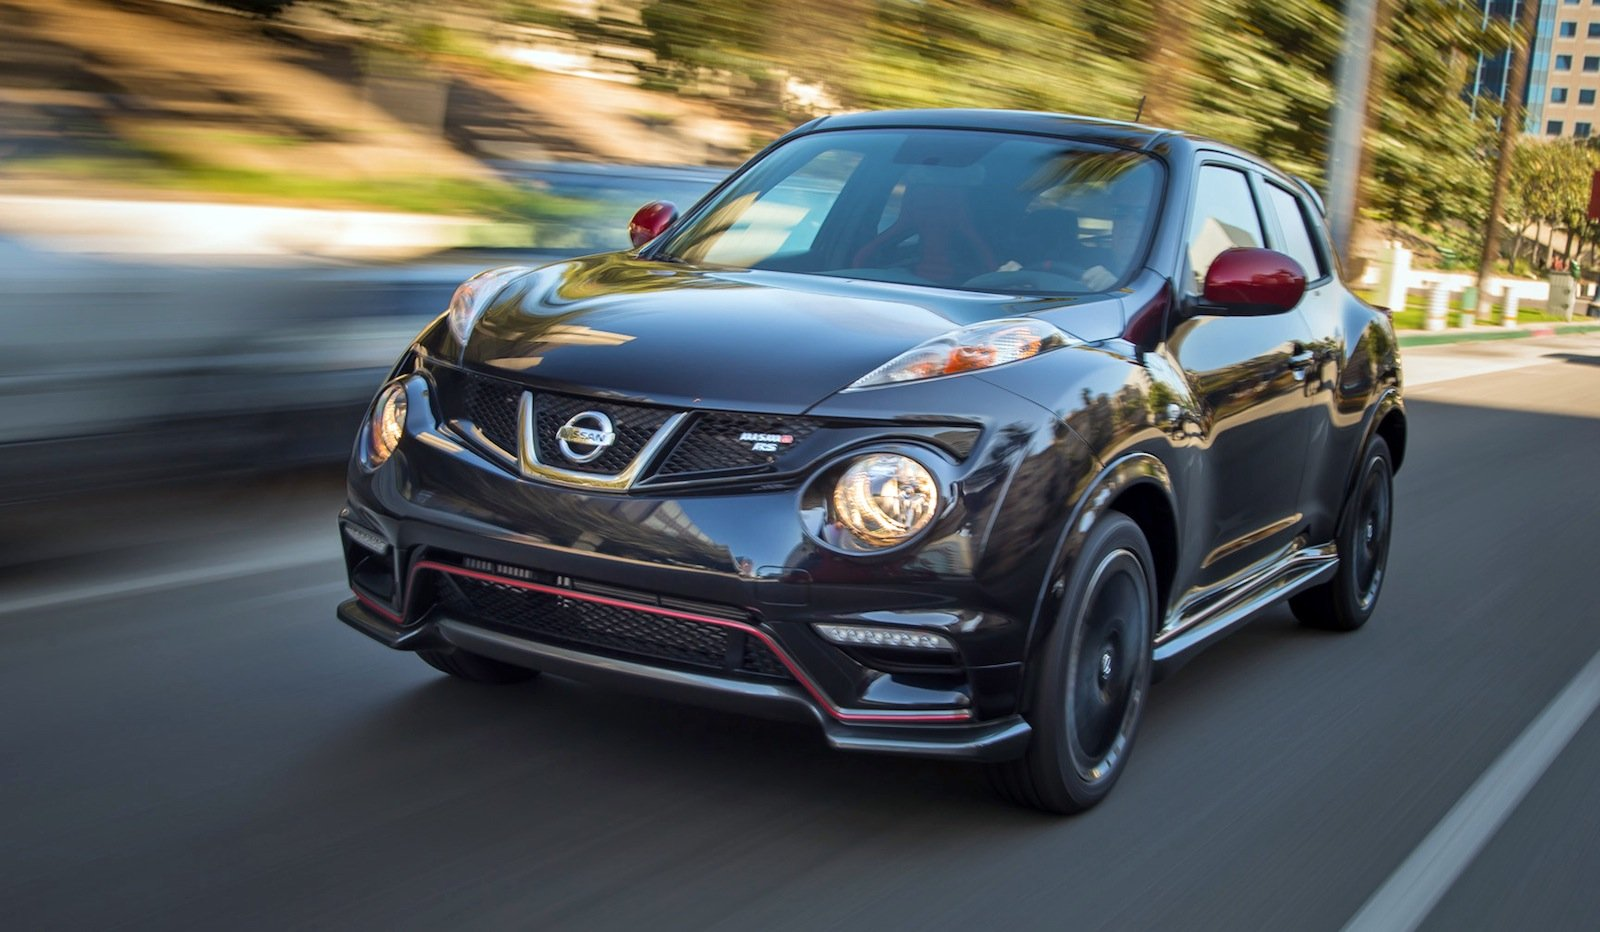 nissan juke nismo rs 160kw hardcore crossover unveiled photos 1 of 13. Black Bedroom Furniture Sets. Home Design Ideas